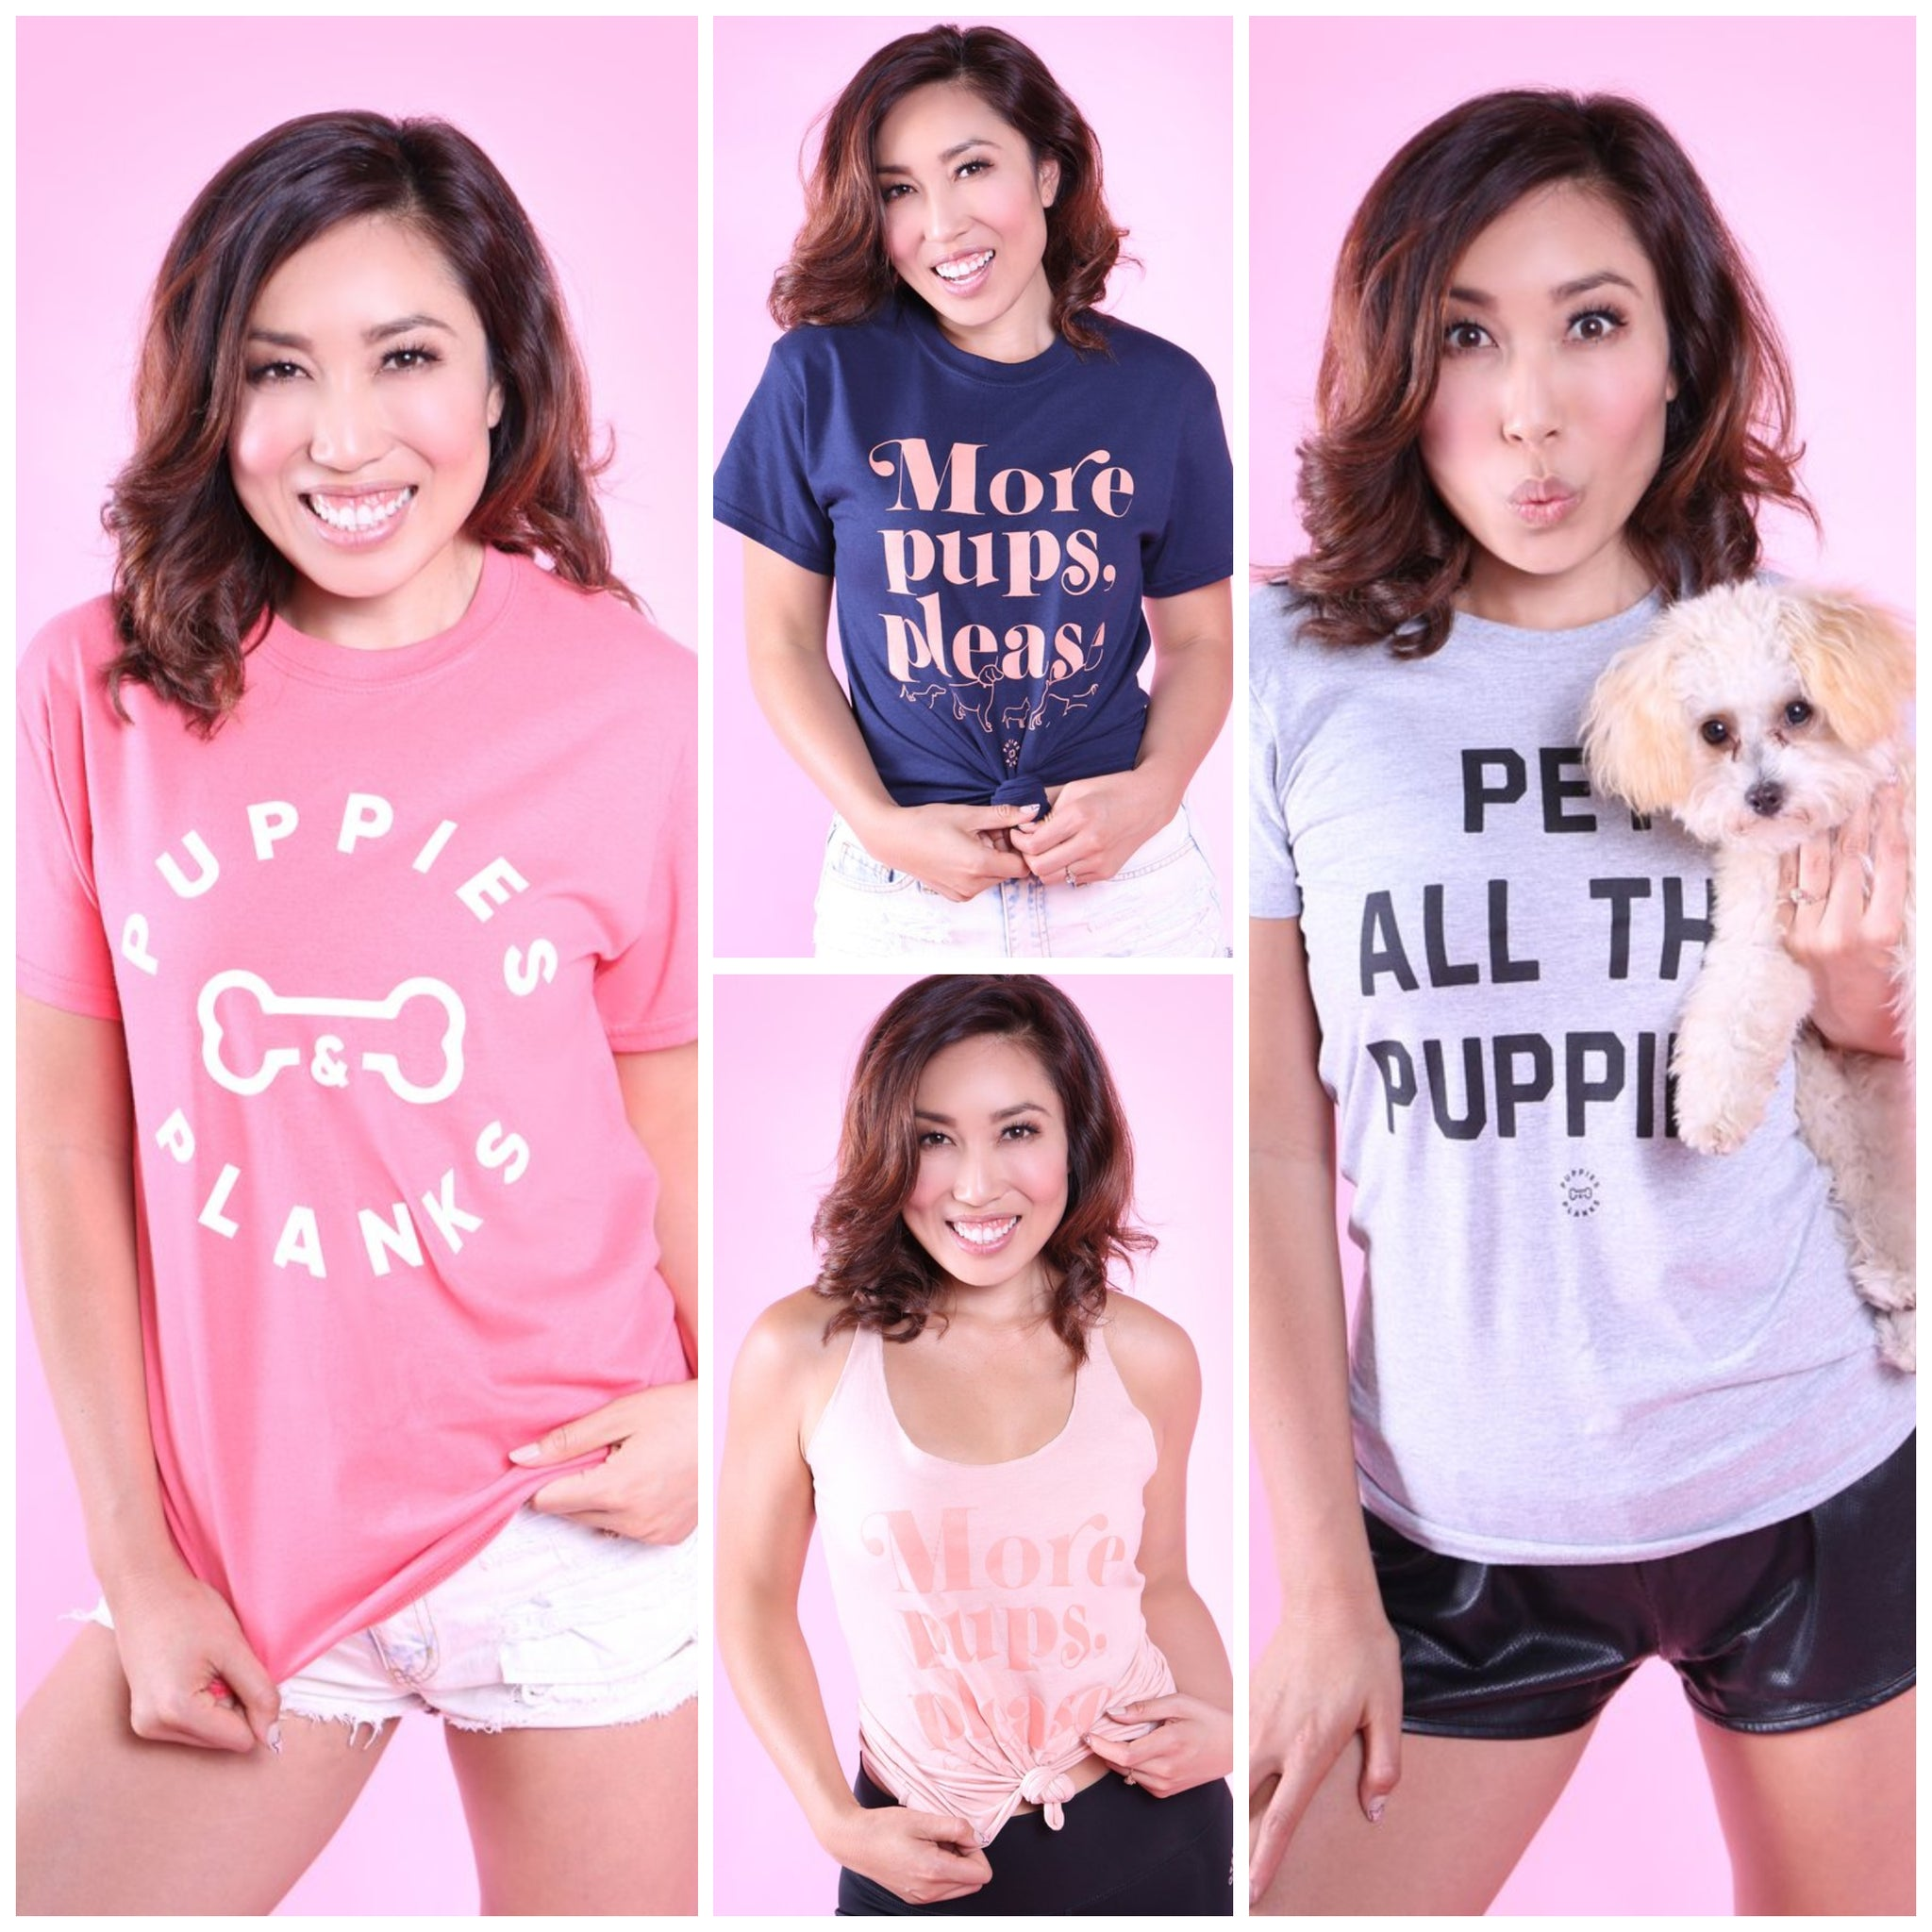 Puppies & Planks Shirts are Here!!